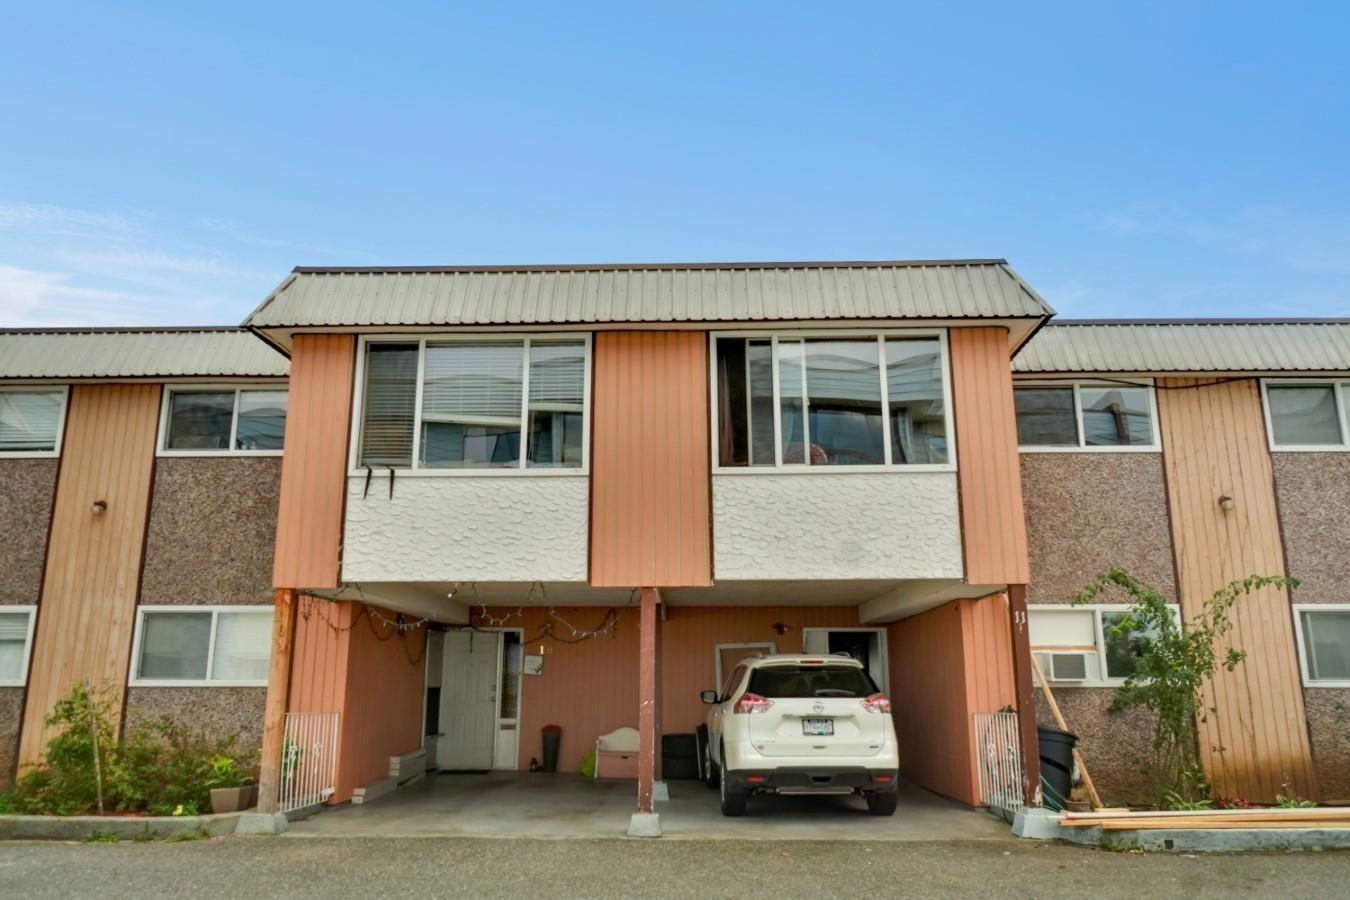 Main Photo: 11 2241 MCCALLUM Road in Abbotsford: Central Abbotsford Townhouse for sale : MLS®# R2619744